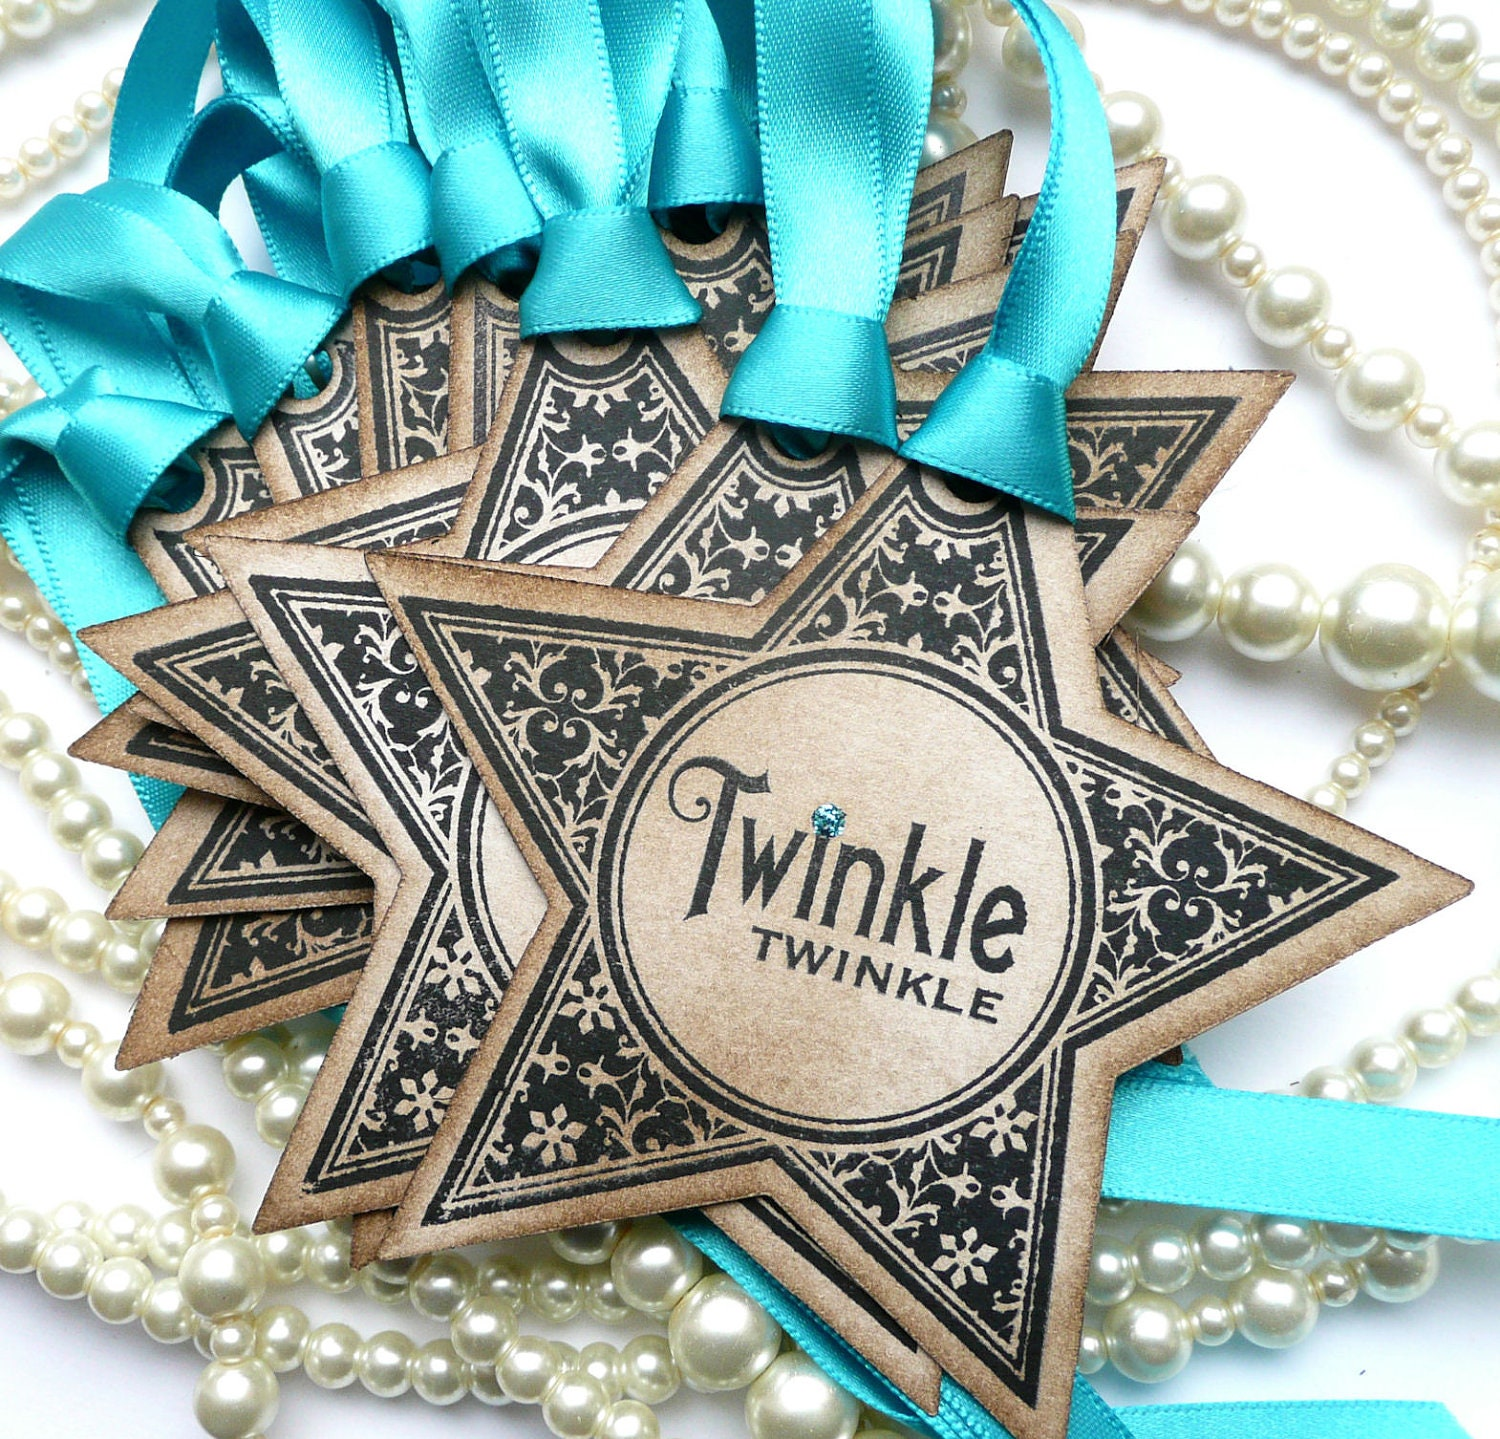 Christmas Gift Tag Twinkle Stars - Vintage Style - Turquoise Glitter - Set of 10 - amaretto